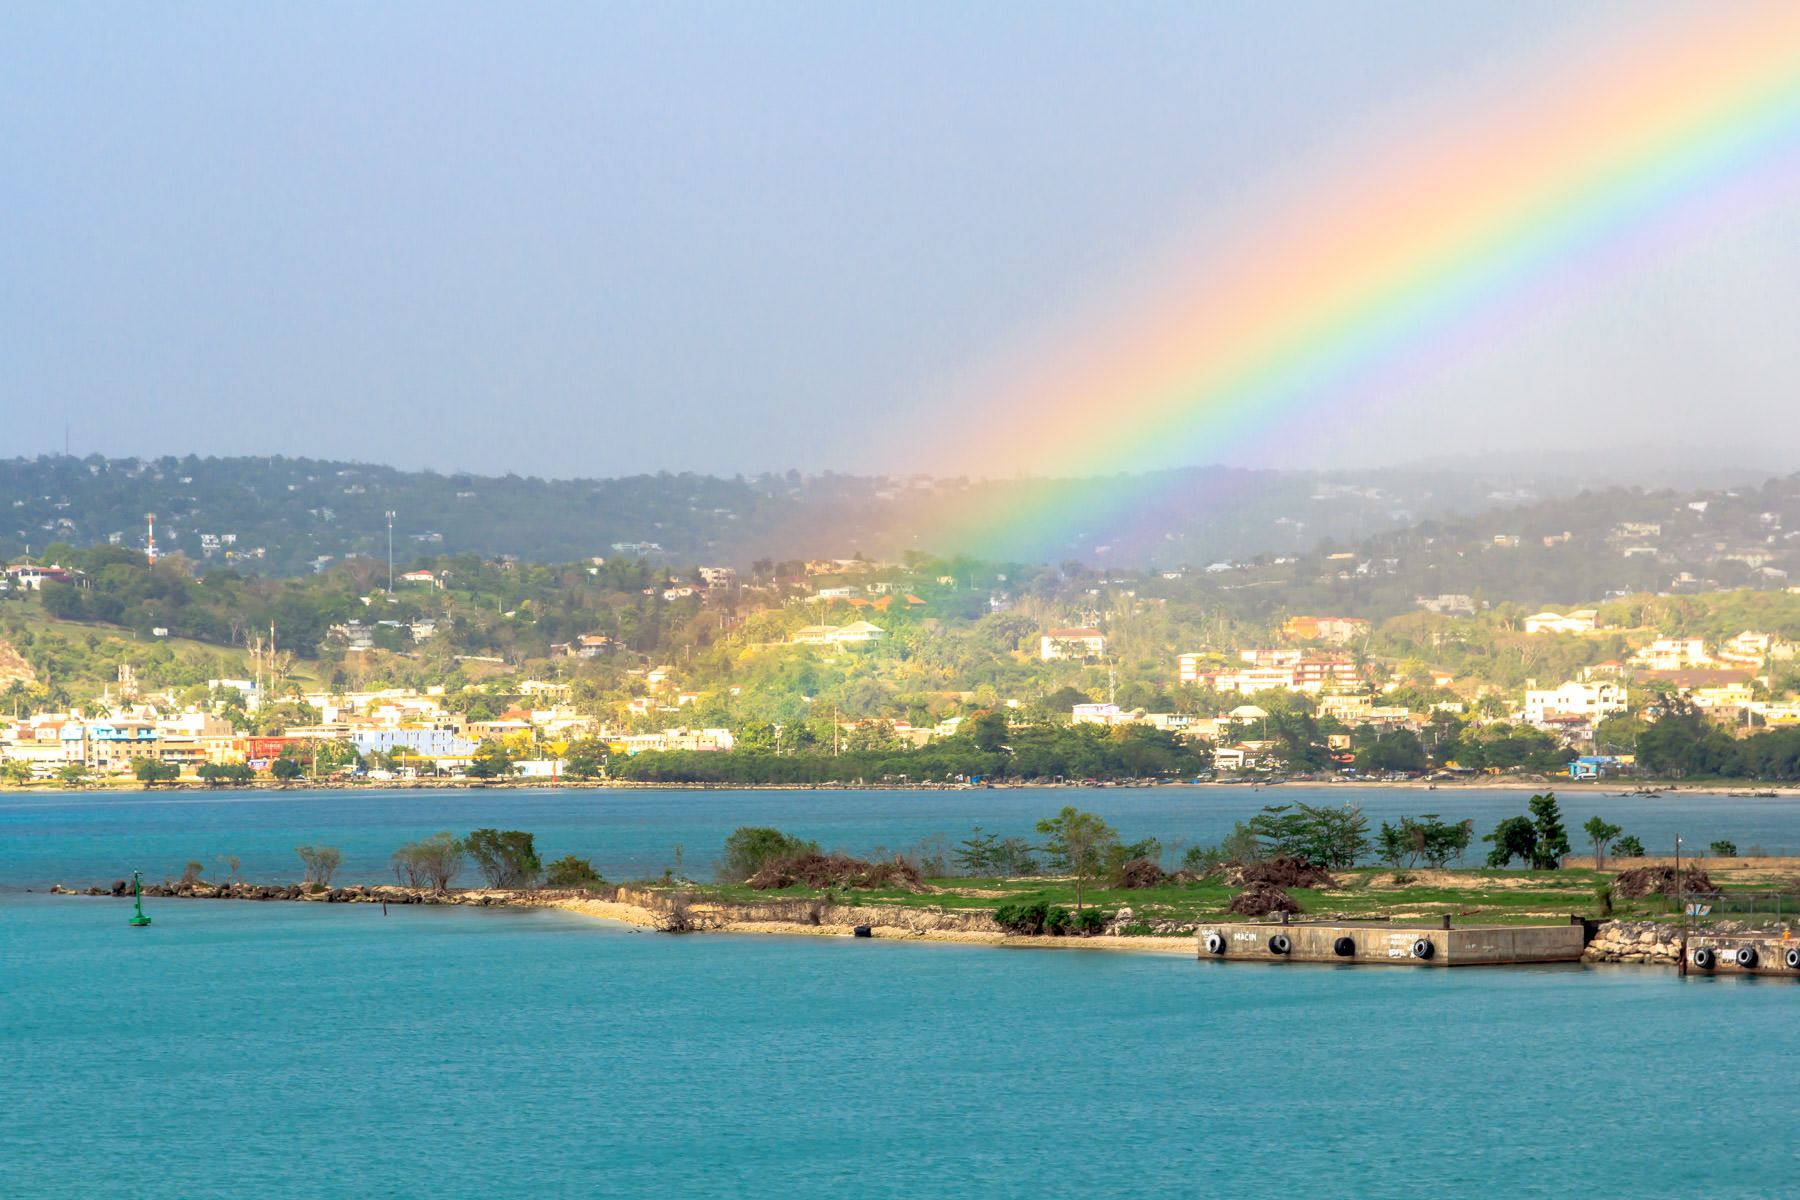 A rainbow—remnants of an afternoon shower—arcs over Montego Bay, Jamaica.